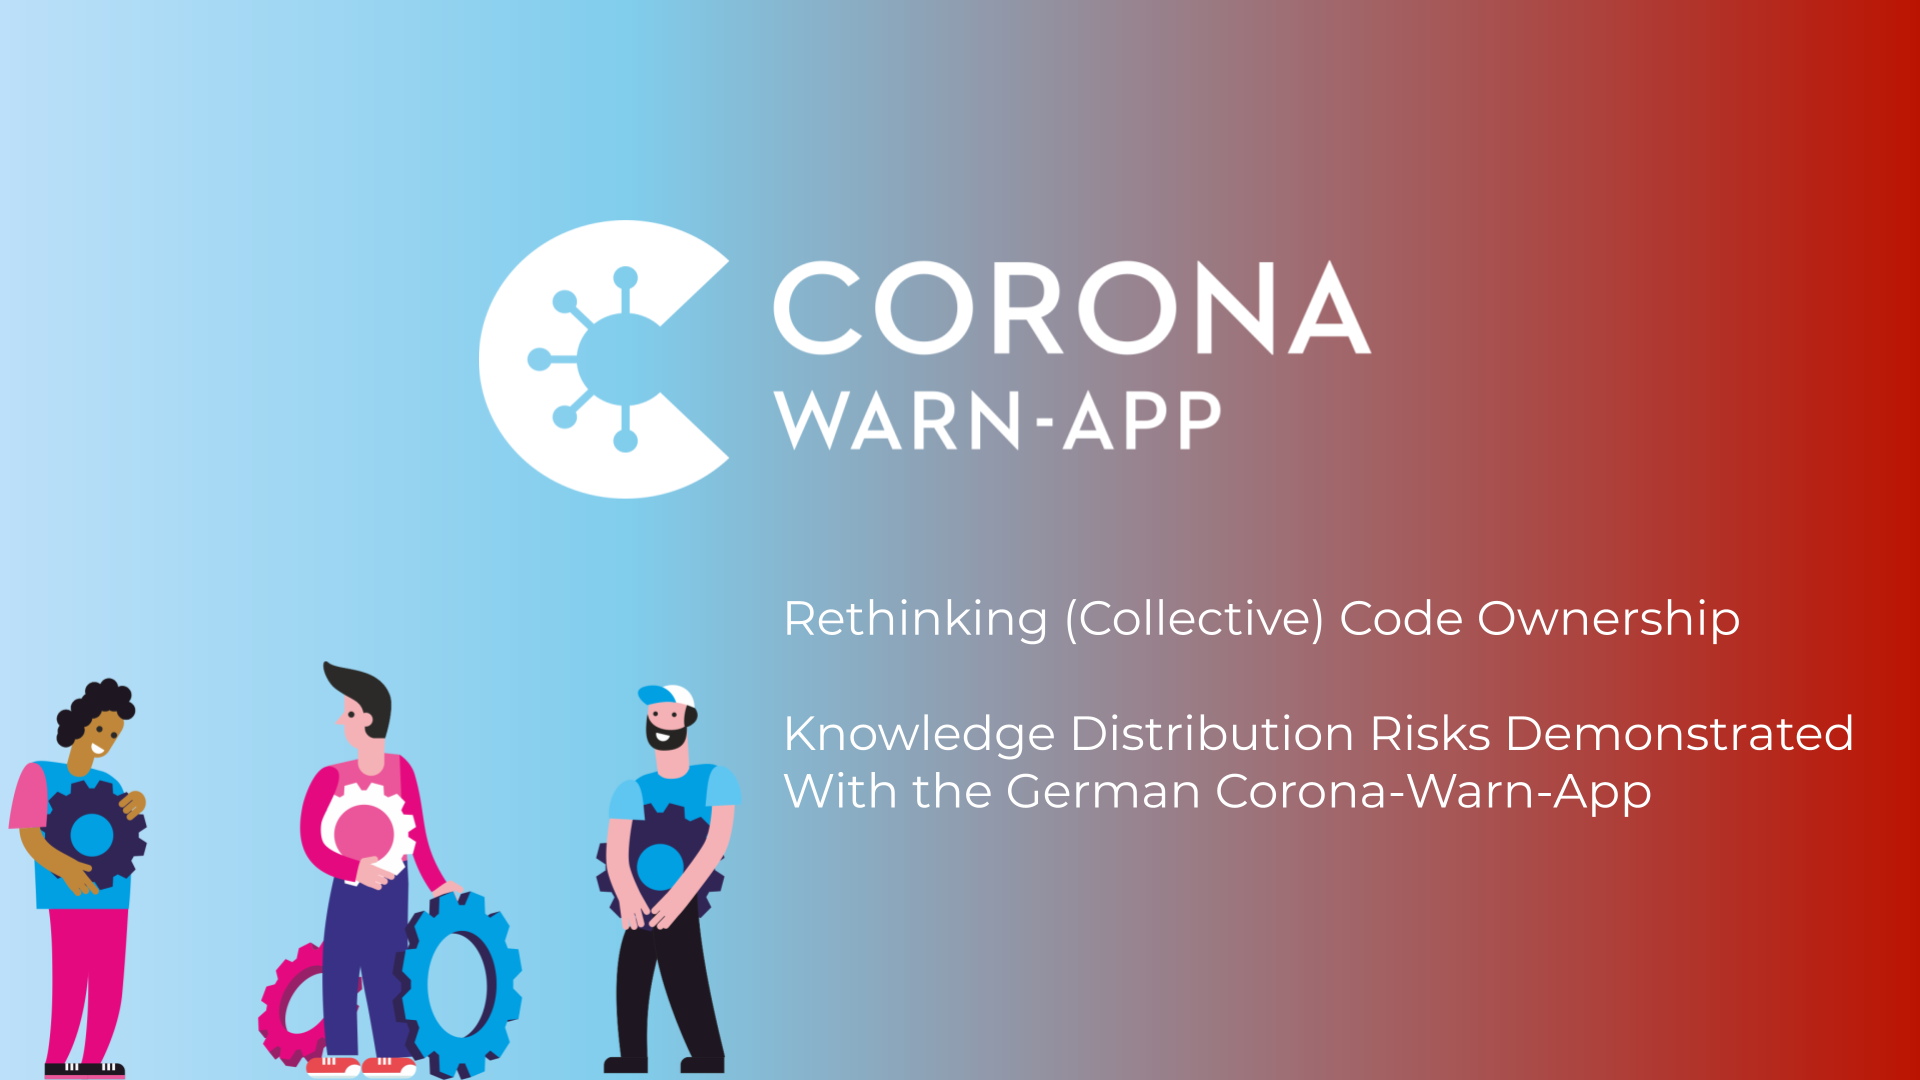 Rethinking (Collective) Code Ownership – Knowledge Distribution Risks Demonstrated With the German Corona-Warn-App